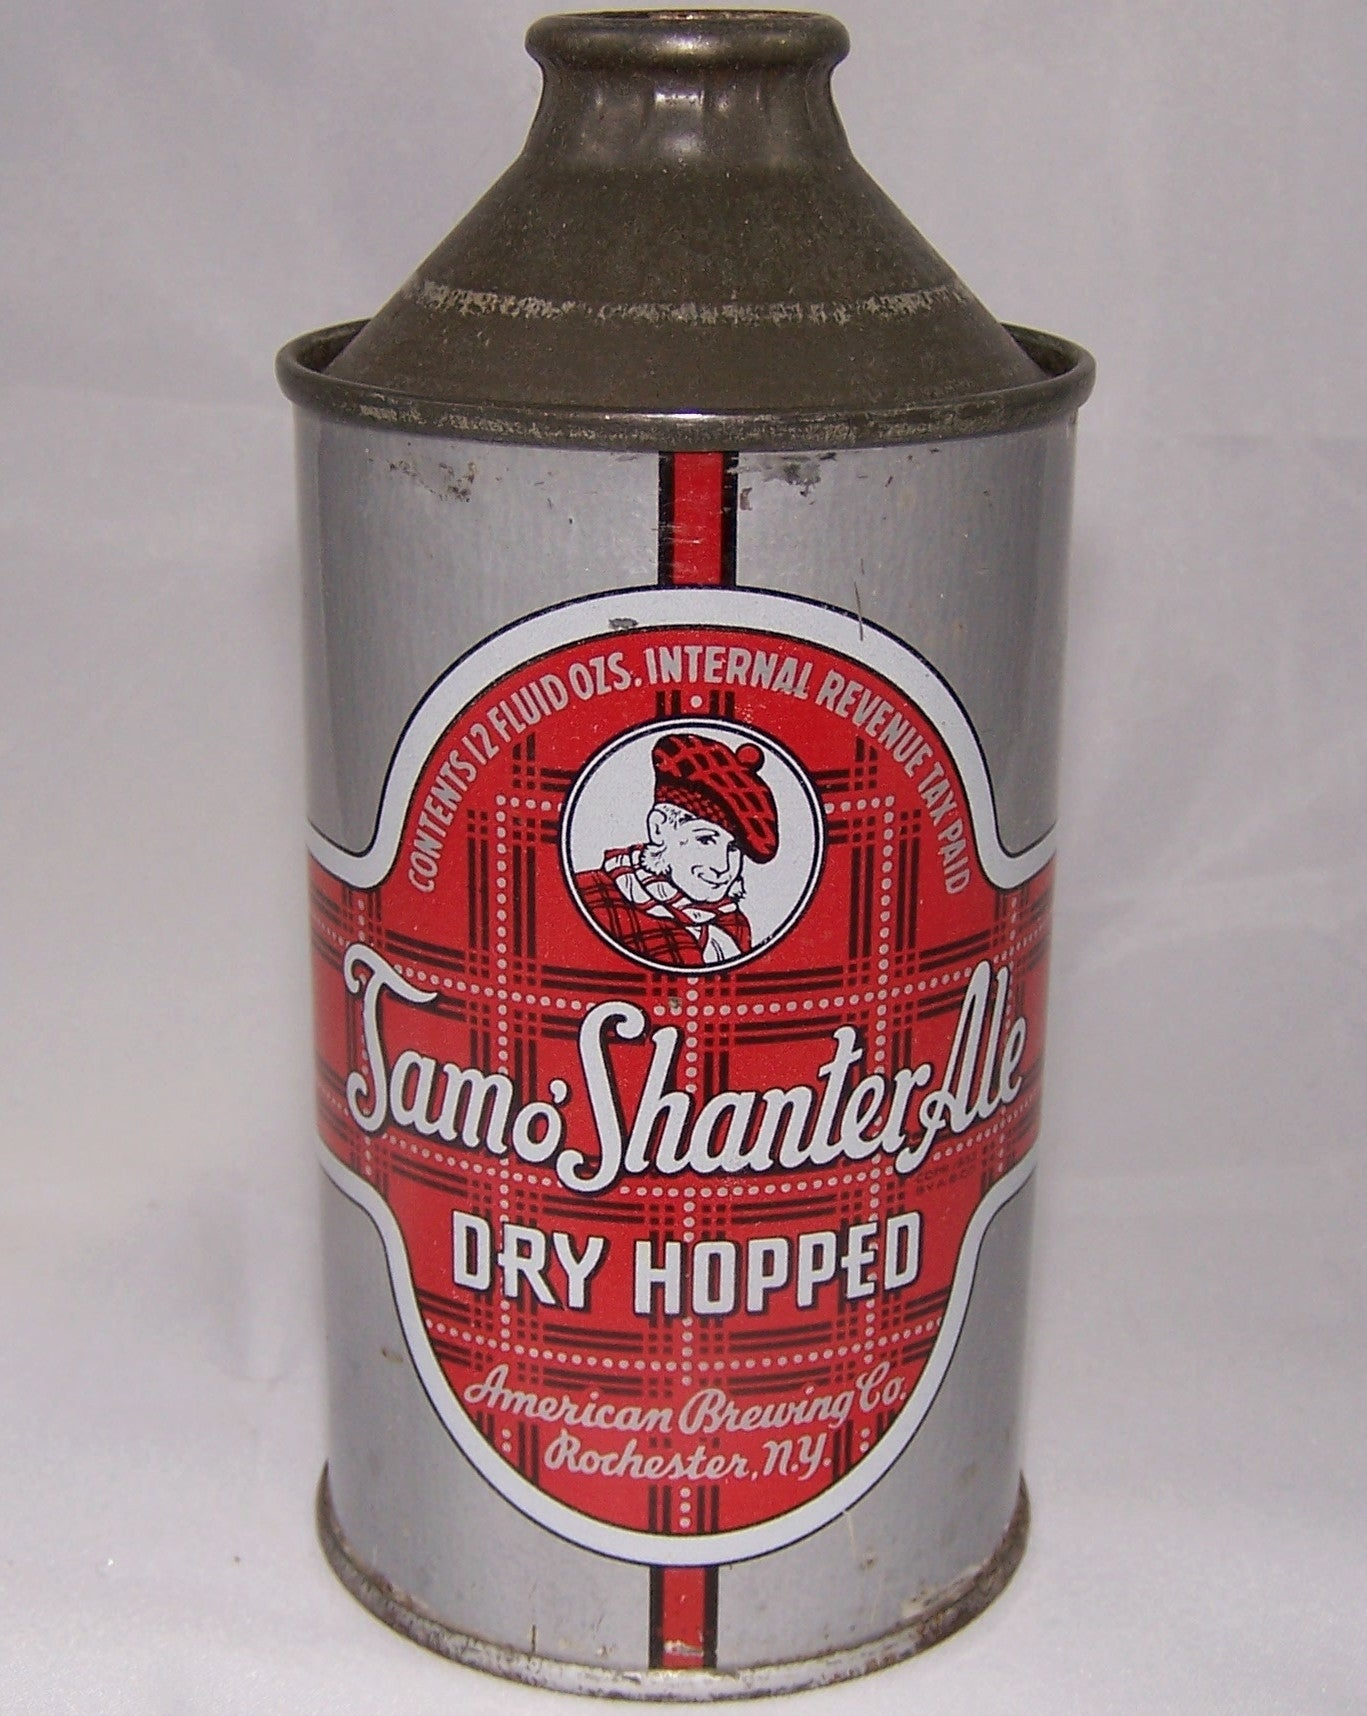 Tamo' Shanter Ale, USBC 186-26, Flat Bottom, Grade 1- Sold 8/11/15